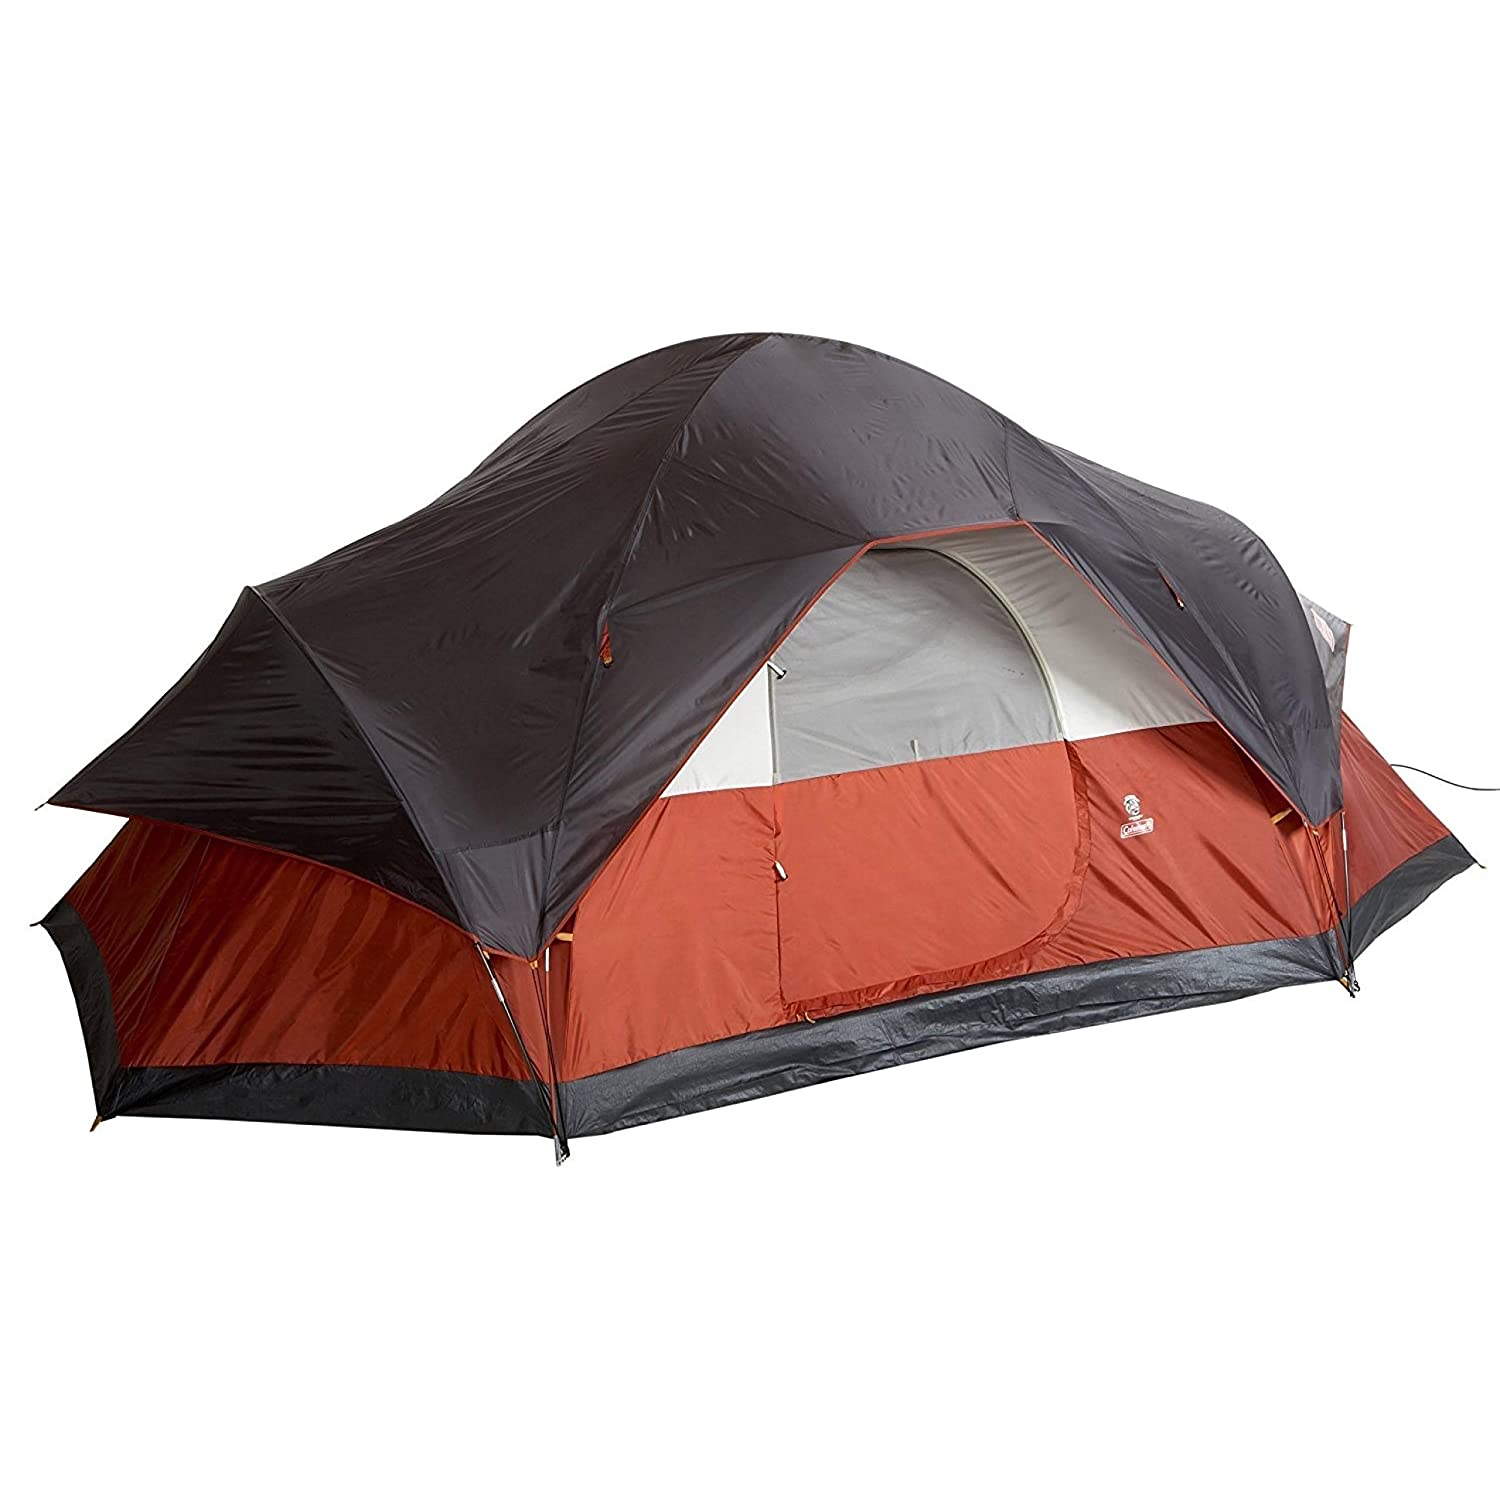 outbound 8 person 2 room tent review